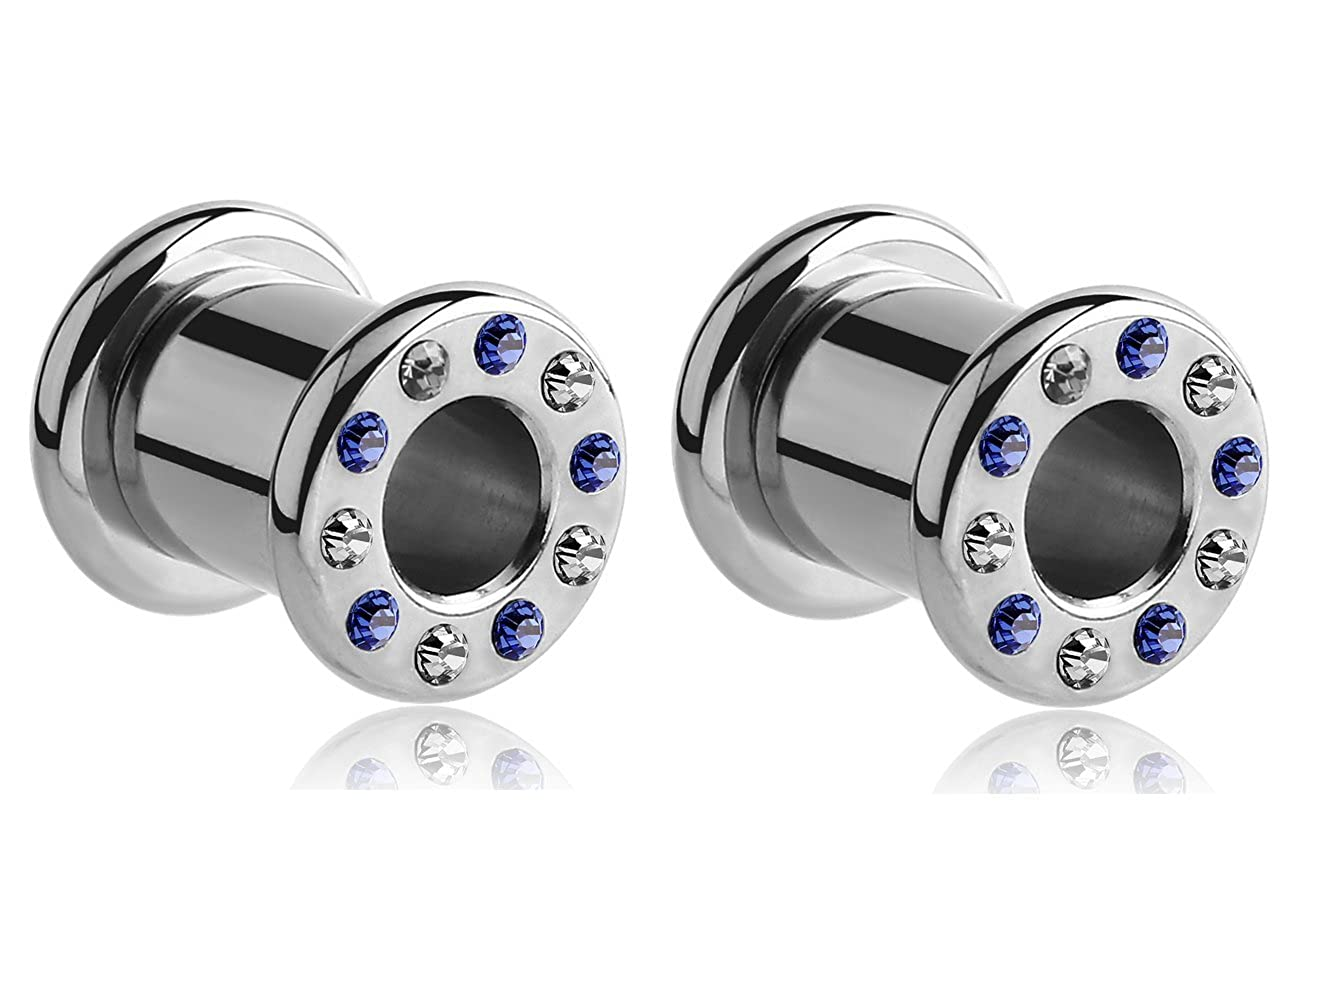 Holy Plug Body Piercing Jewelry Pair of 2 Stainless Steel Jeweled Round-Edge Threaded Tunnel 000g 0000g 9//16 5//8 11//16 13//16 7//8 15//16 1 1//16 1 1//8 11g 1 3//16 6g 4g 2g 0g